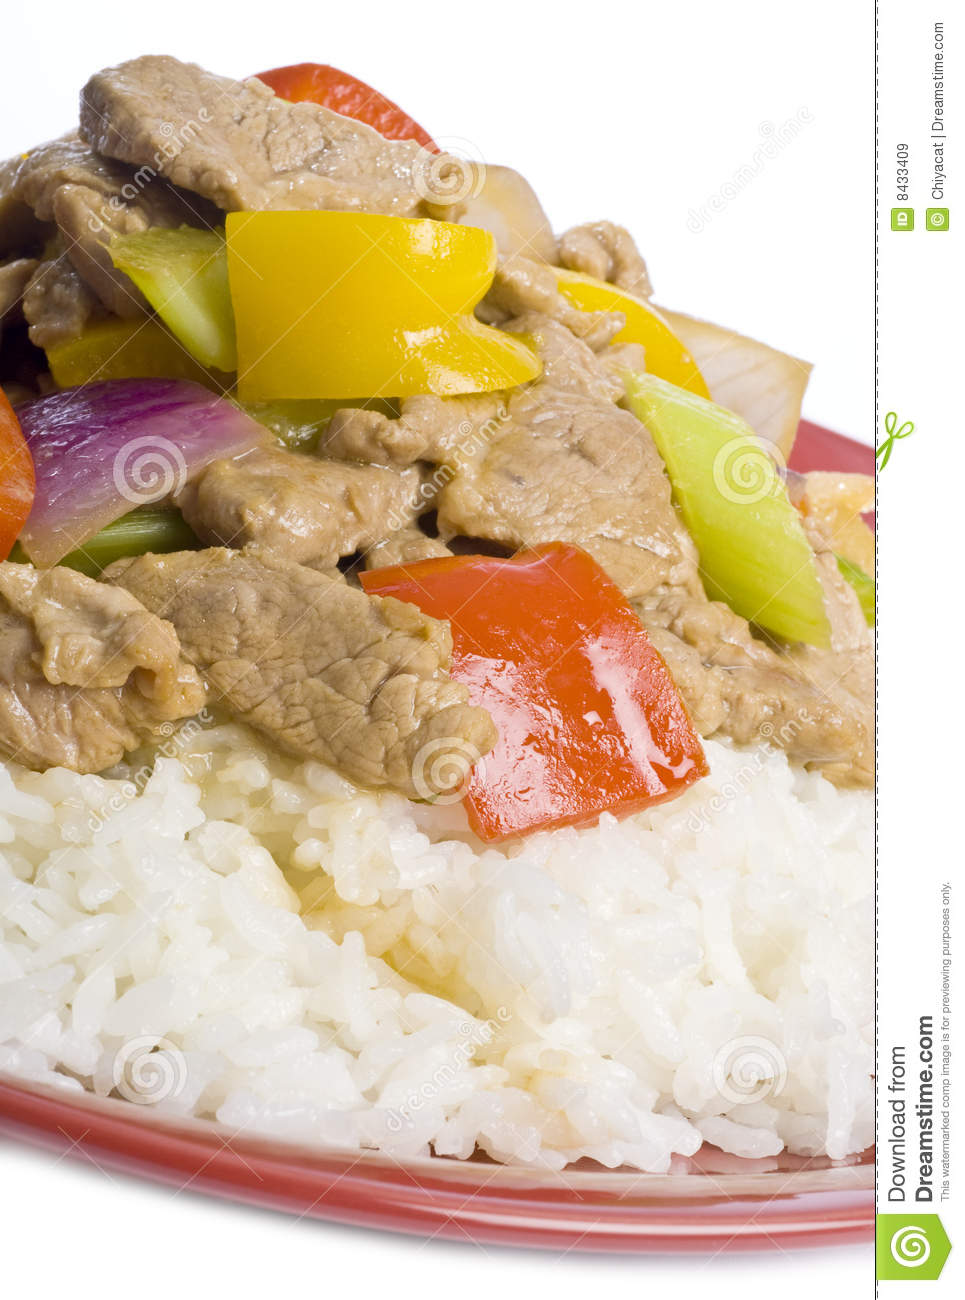 Stir Fried Pork and Vegetables